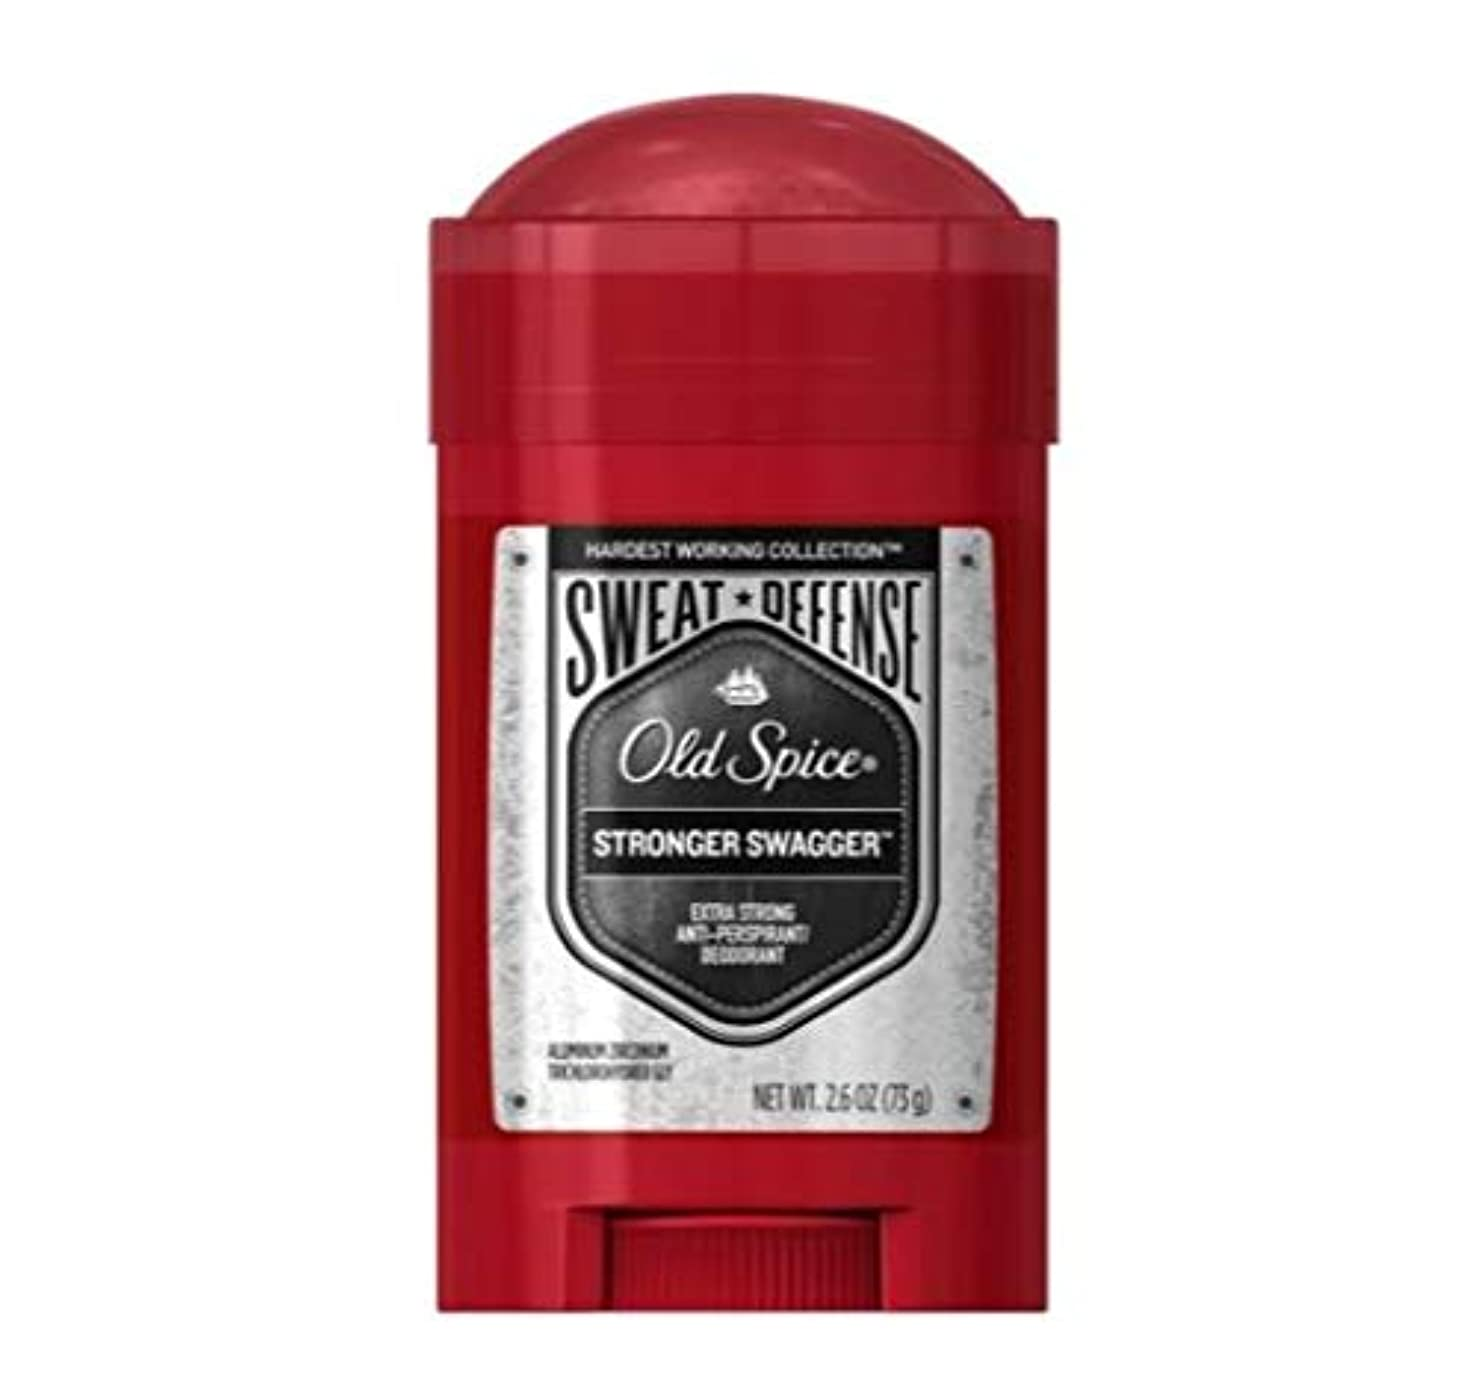 告発者お願いしますクッションOld Spice Hardest Working Collection Sweat Defense Stronger Swagger Antiperspirant and Deodorant - 2.6oz オールドスパイス...